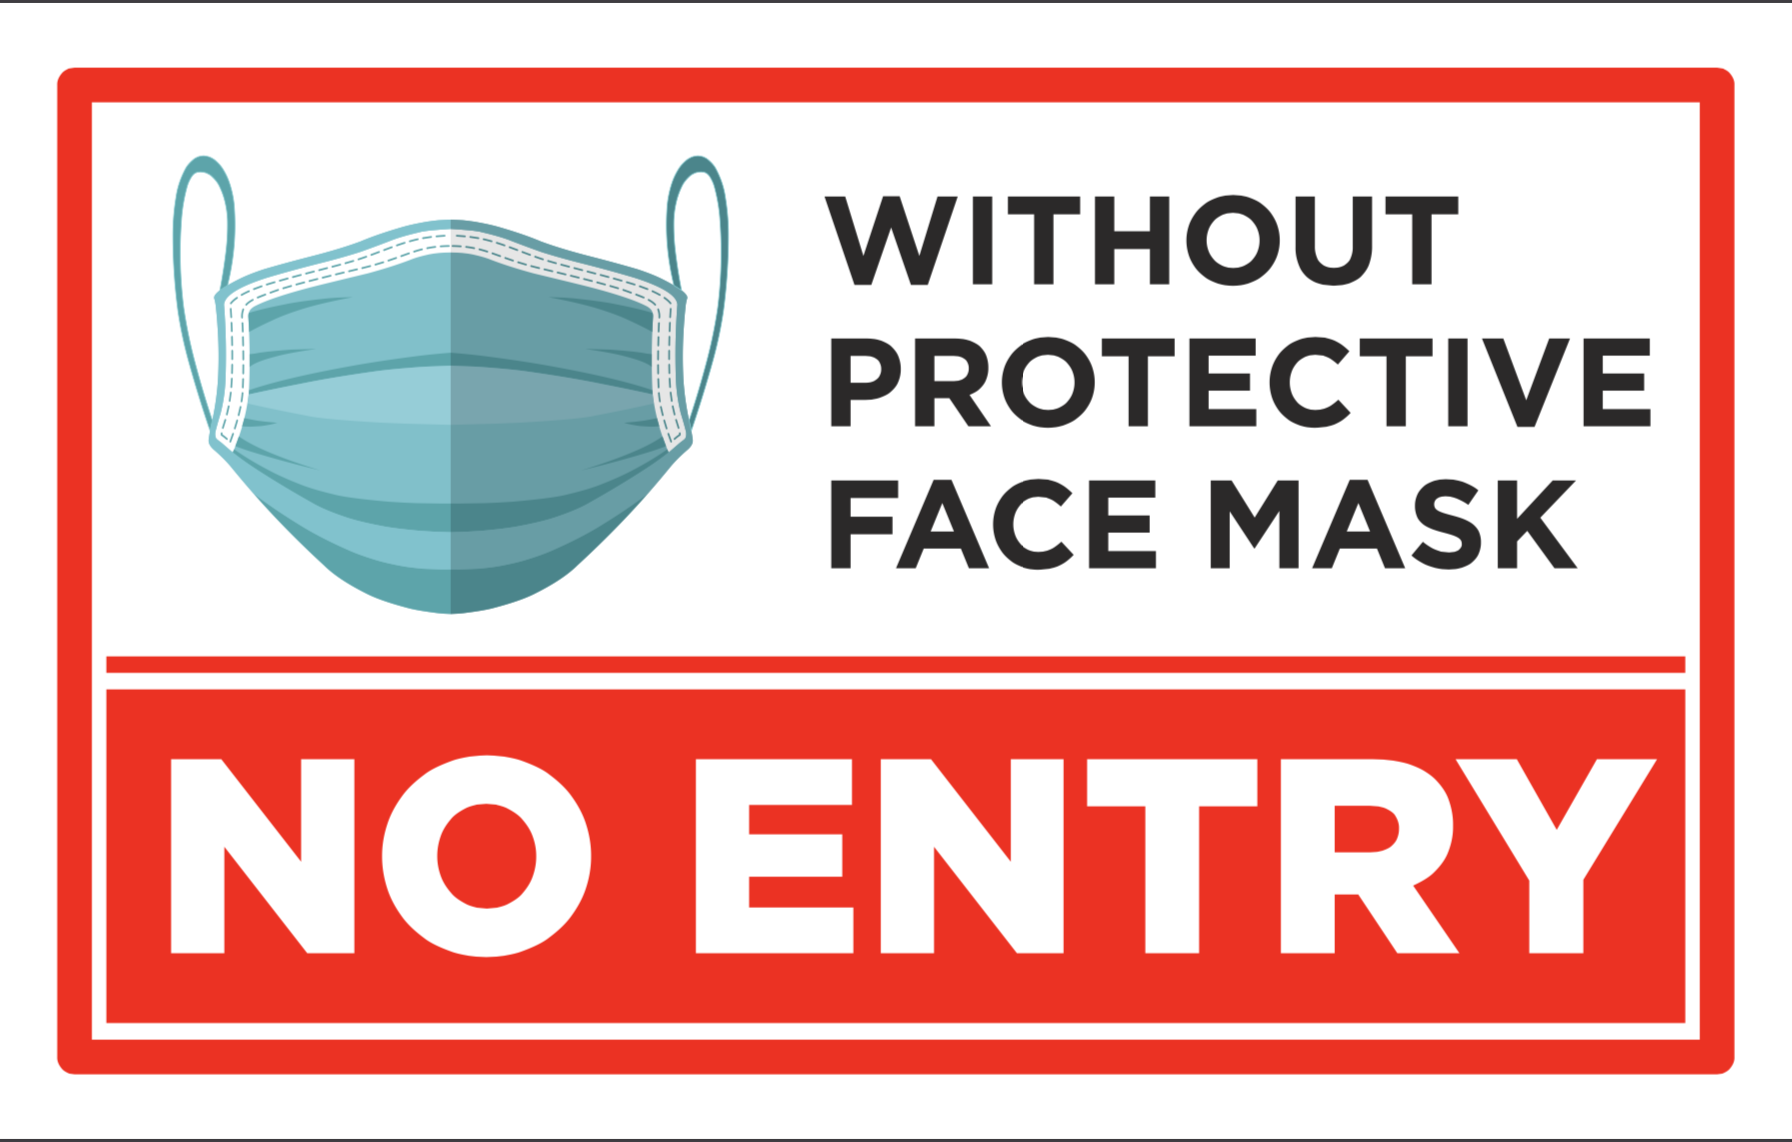 Non-Regulatory Face Mask Standard Approved